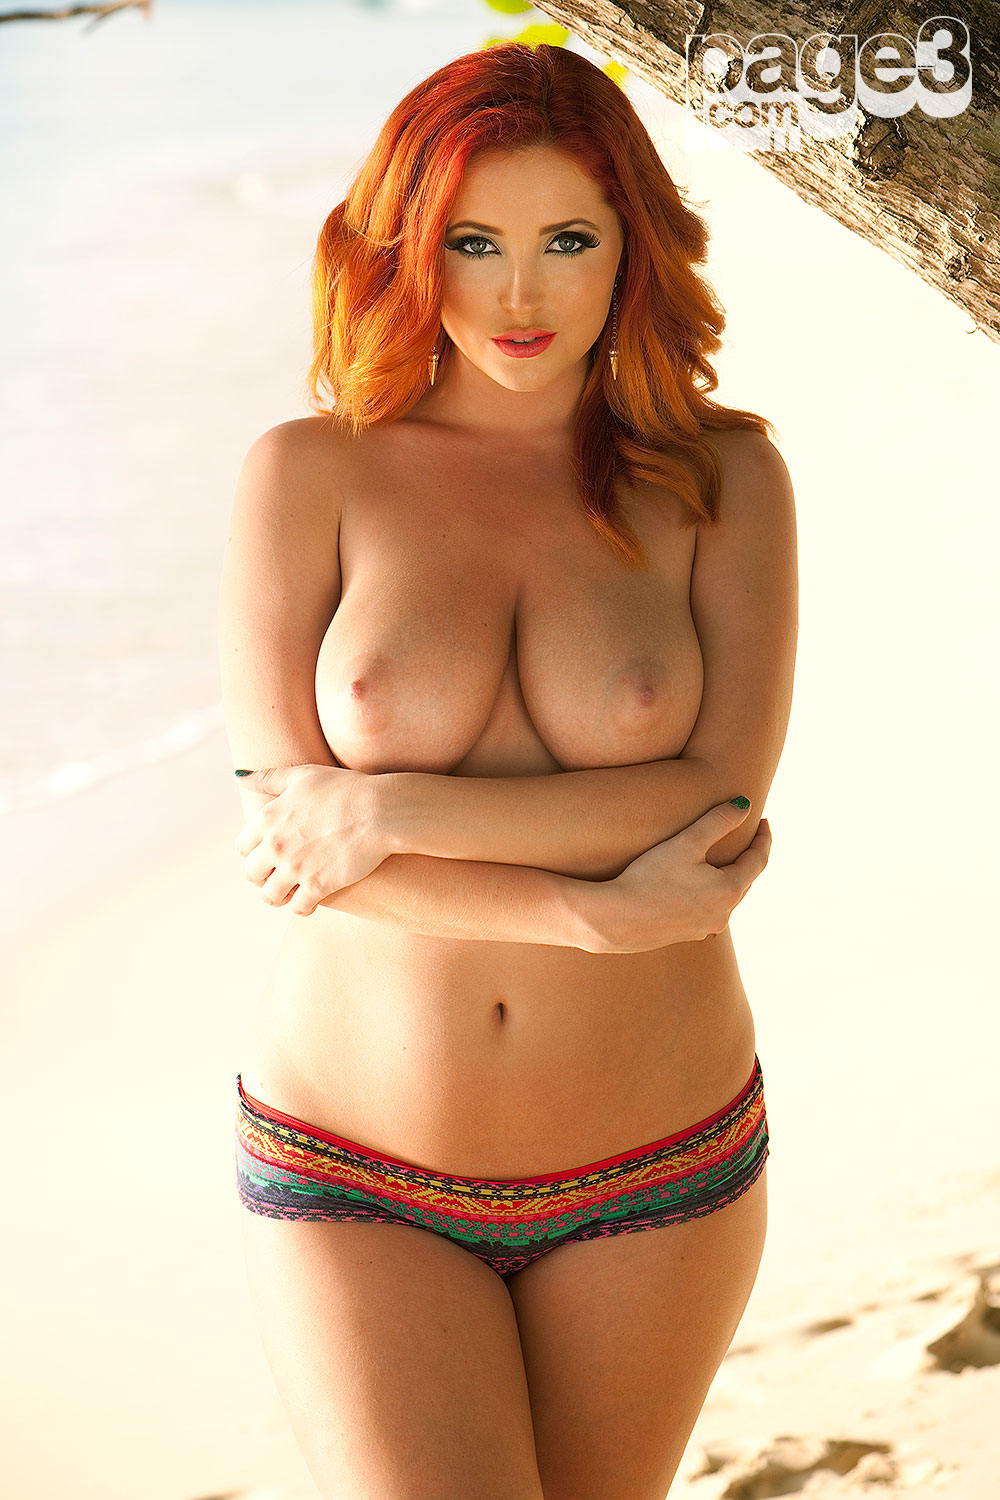 Tracey coleman topless photoshoot 8